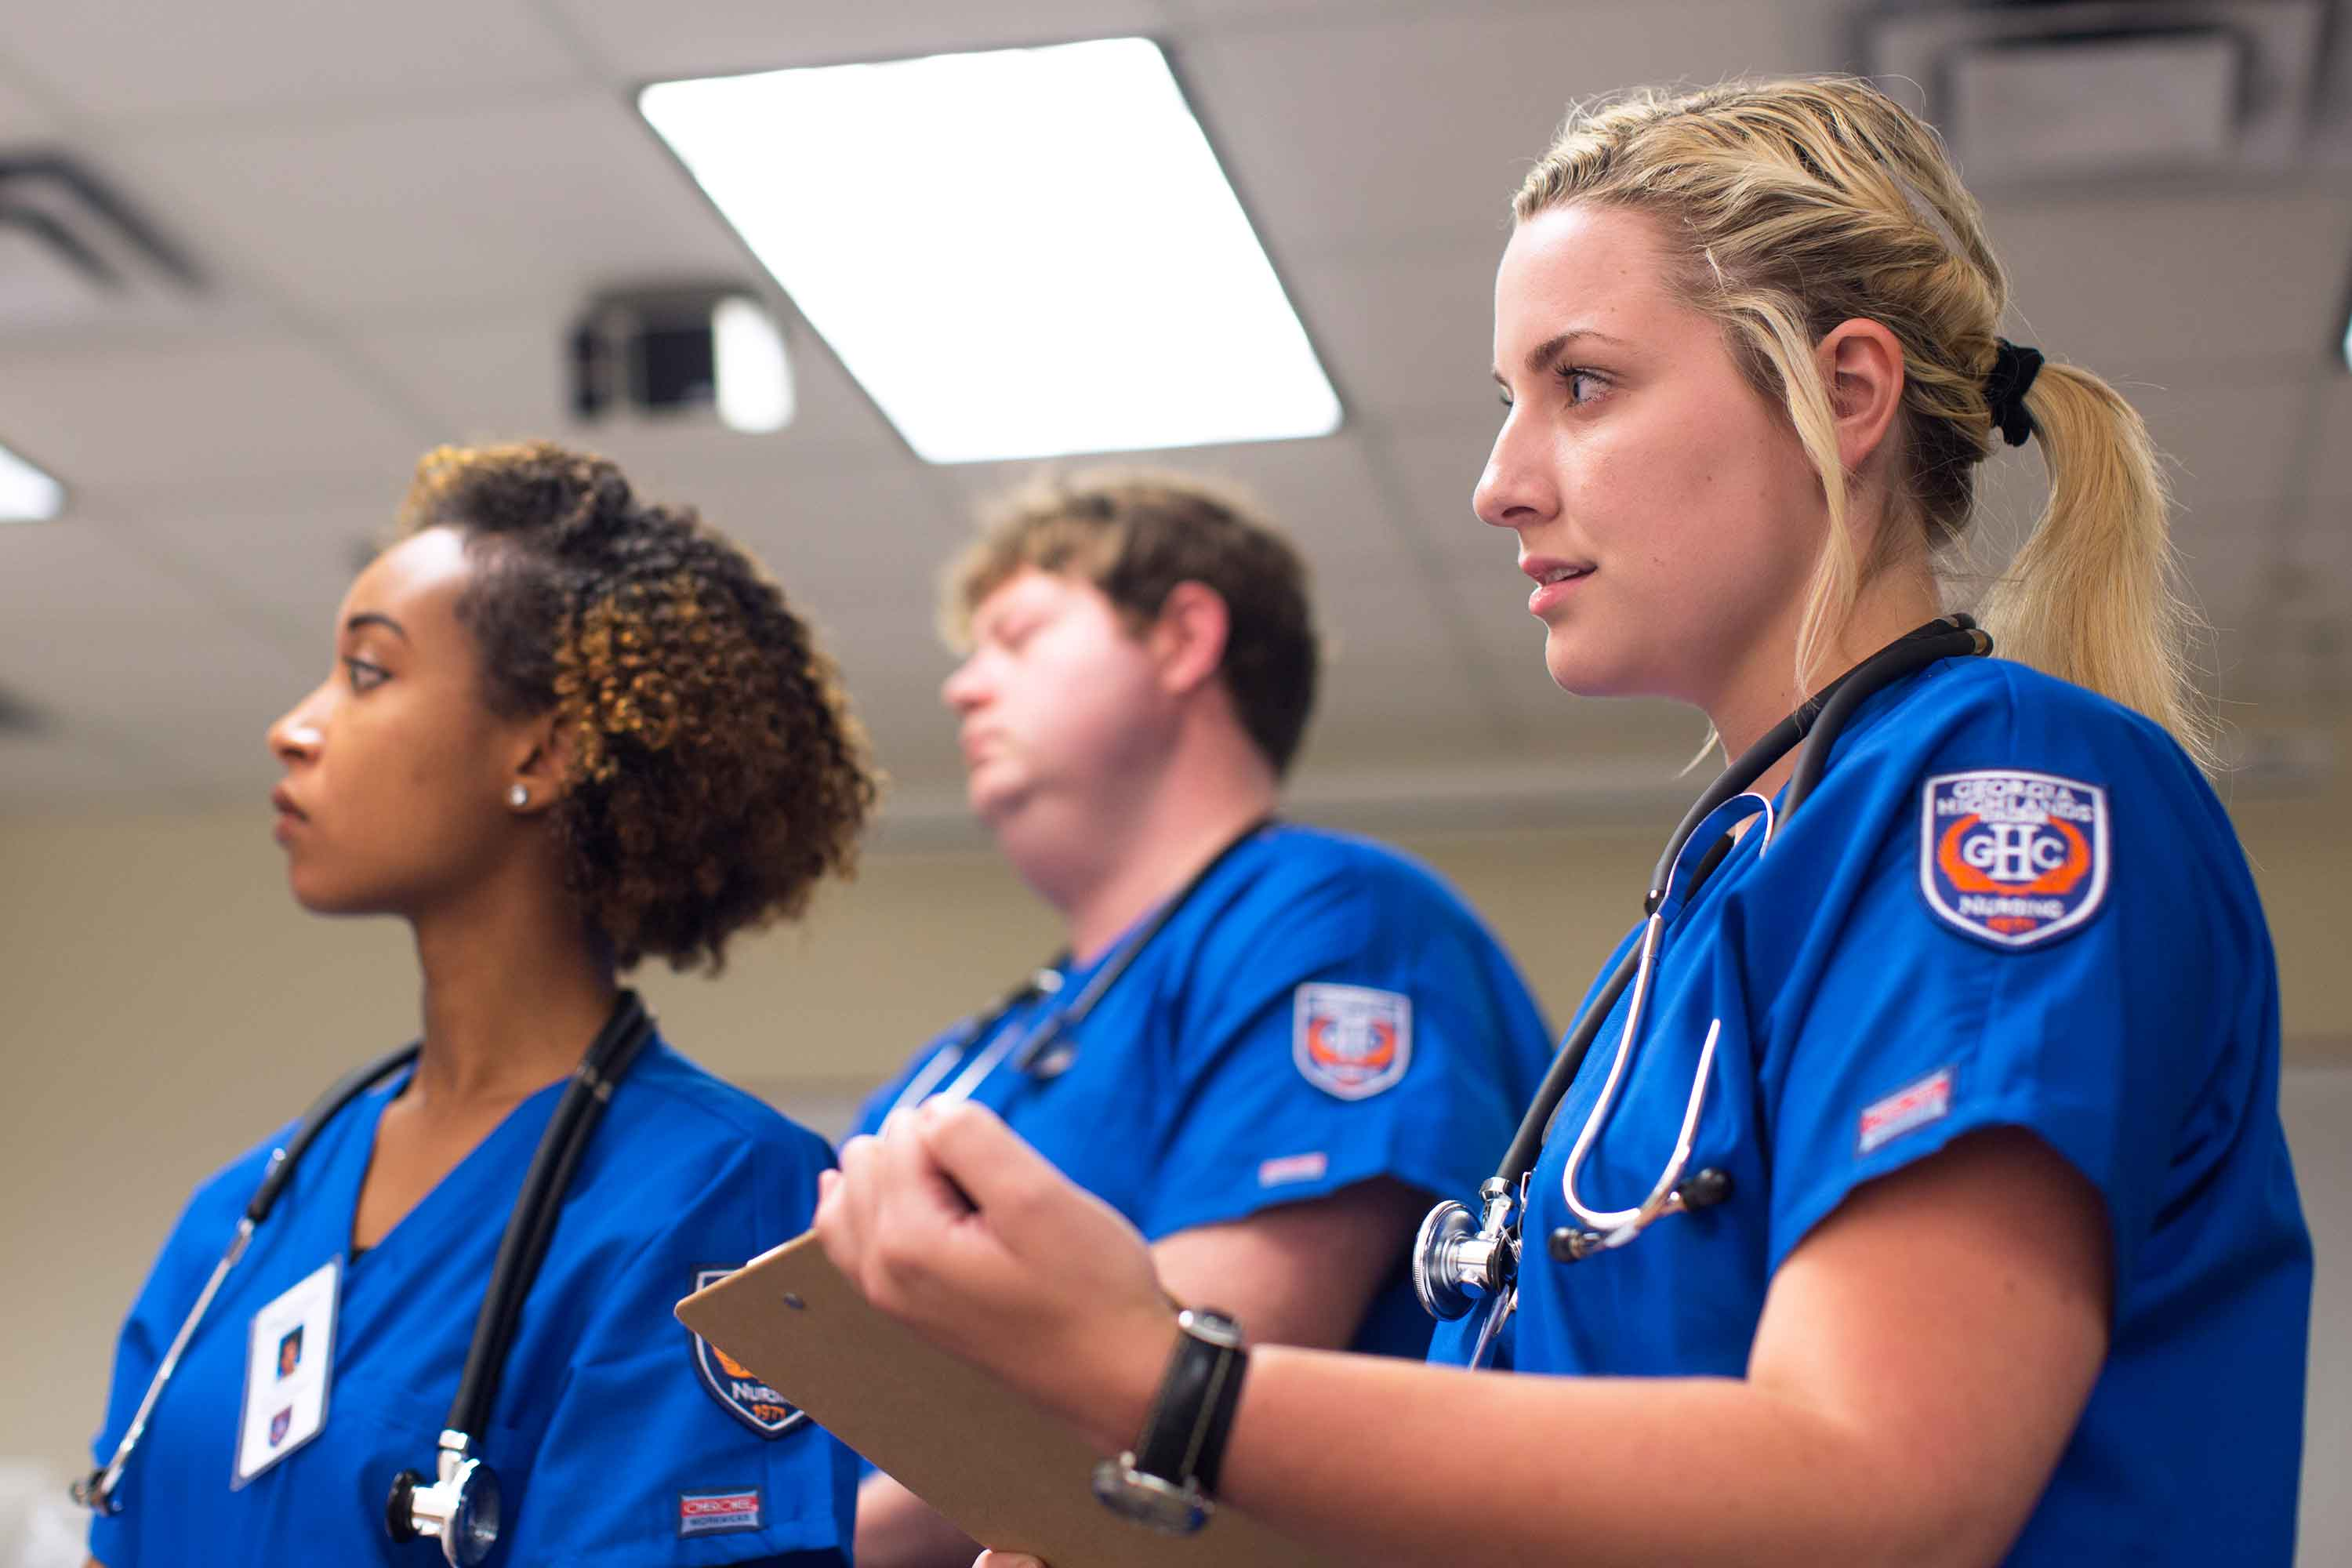 Ghcs Continuing Education Department Launches Health Careers